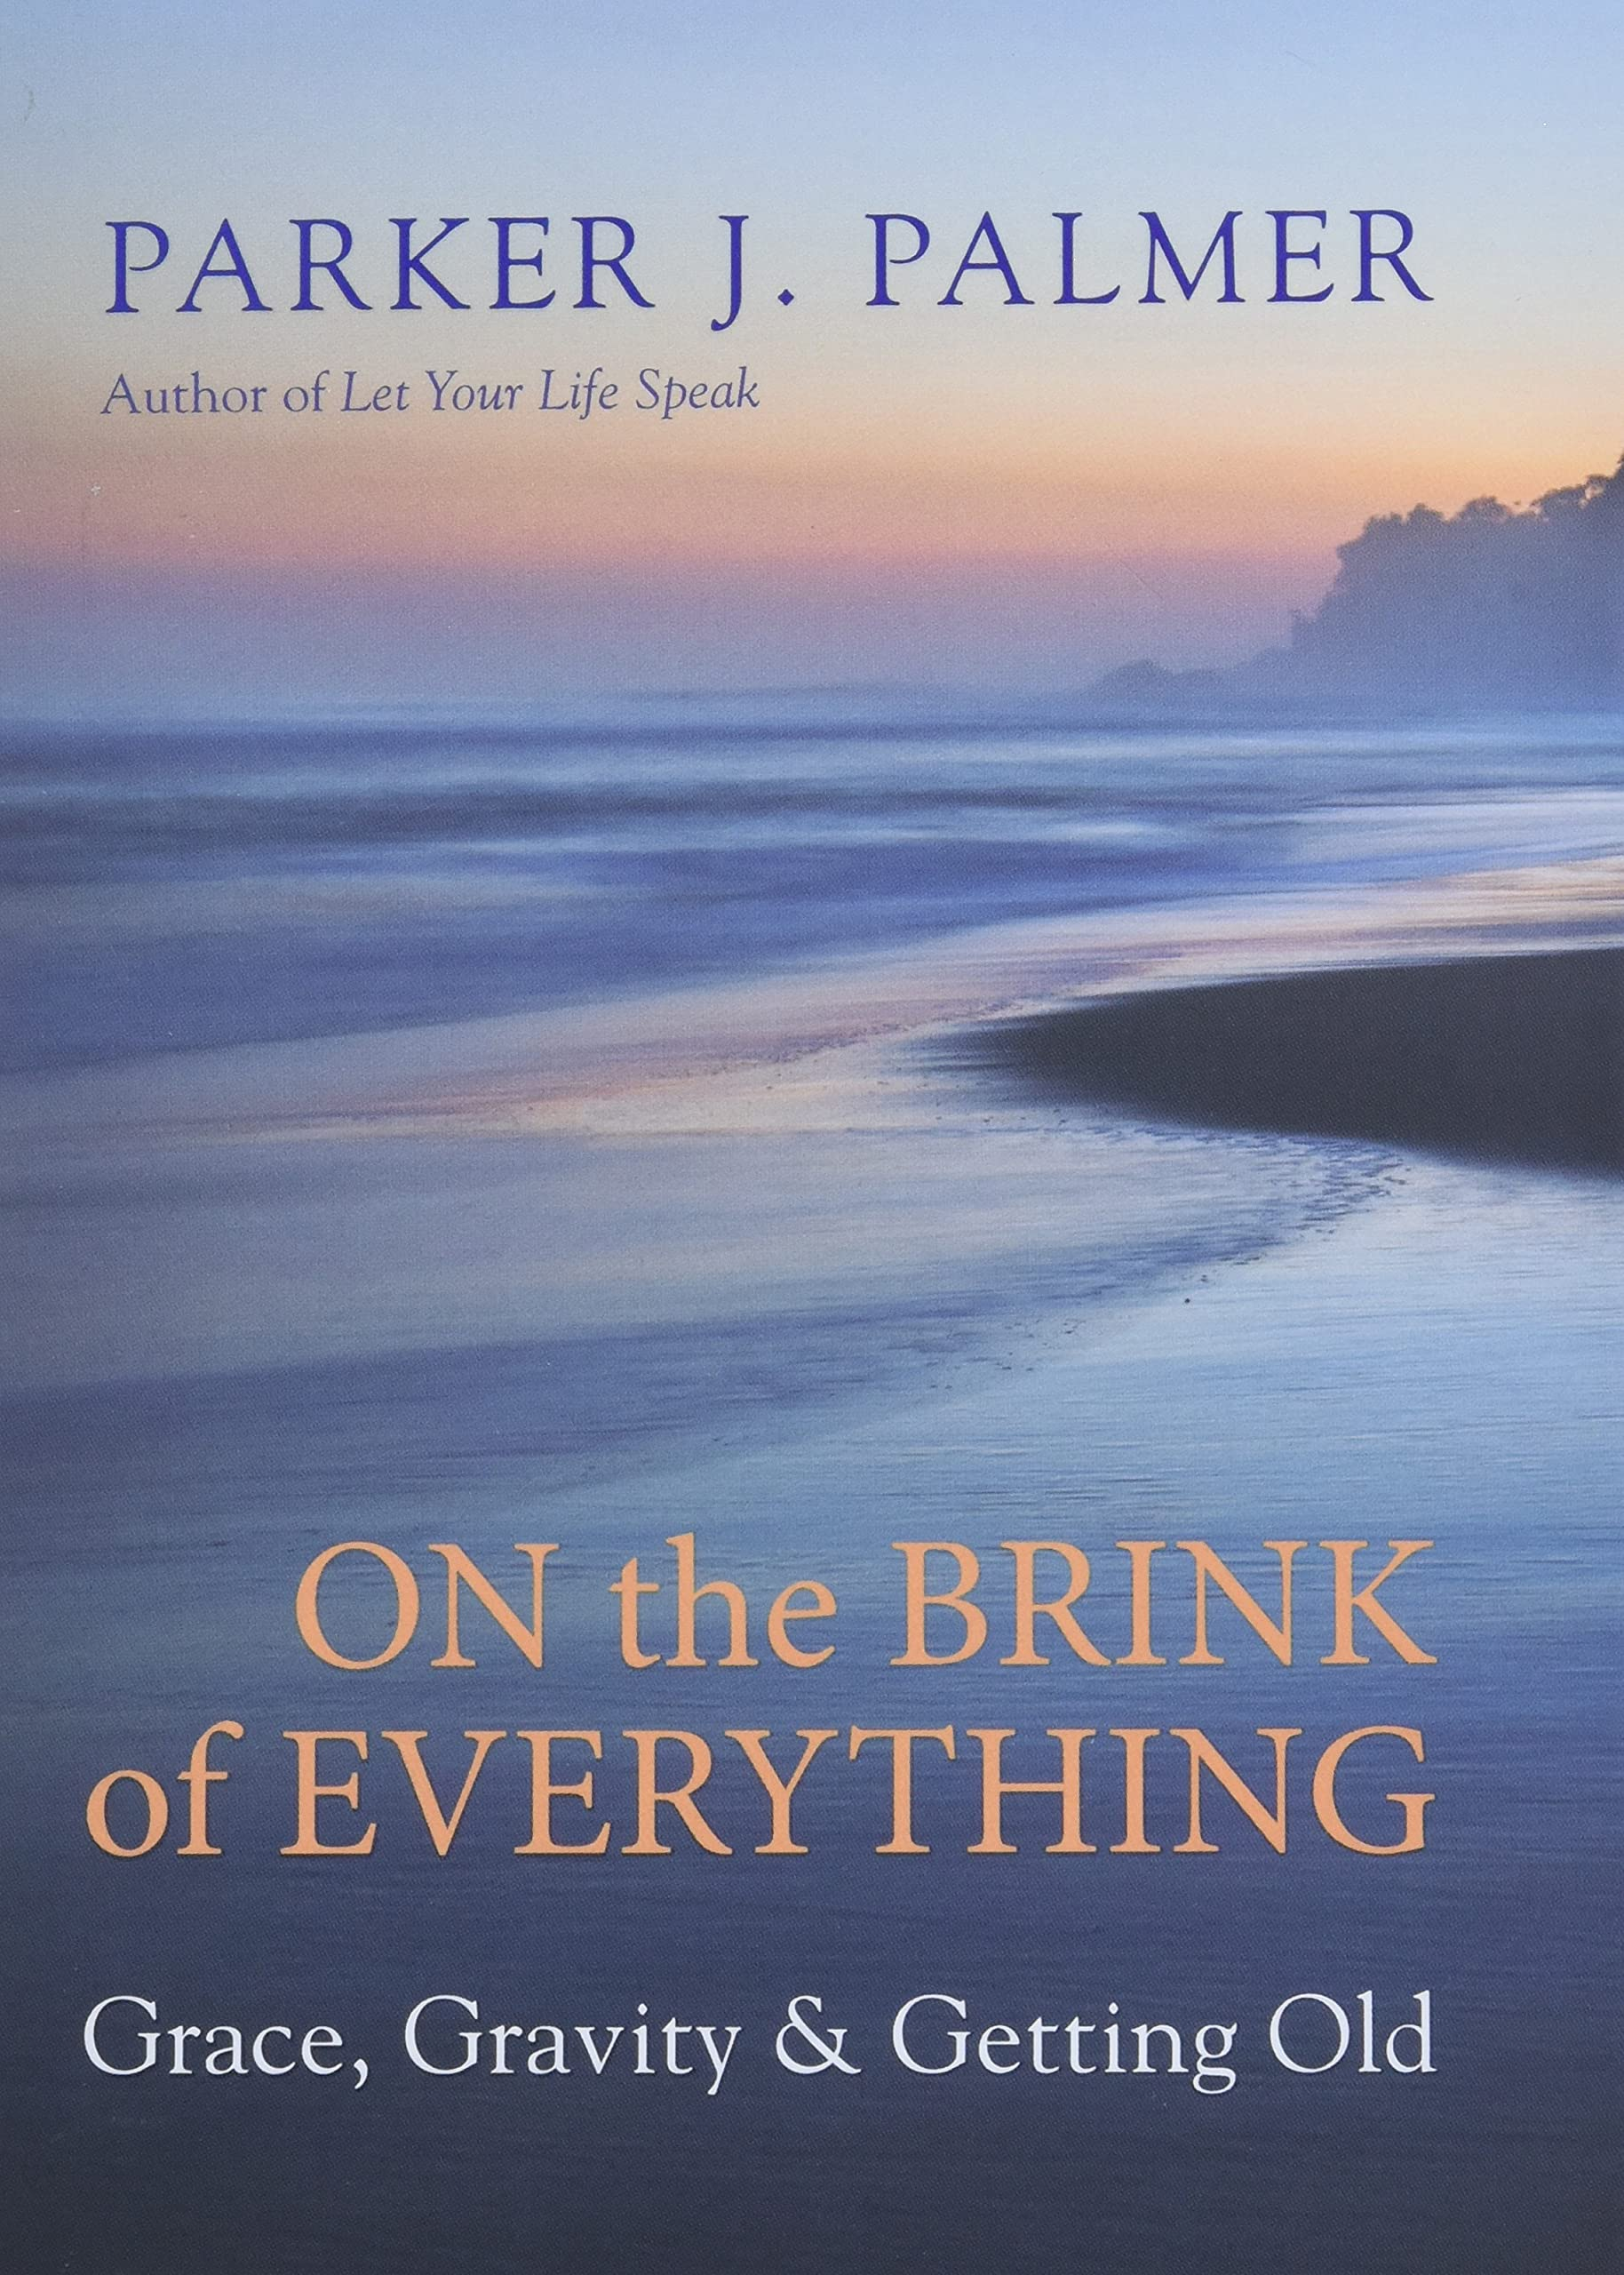 On the Brink of Everything: Grace, Gravity, and Getting Old: Palmer, Parker J.: 9781523095438: Amazon.com: Books